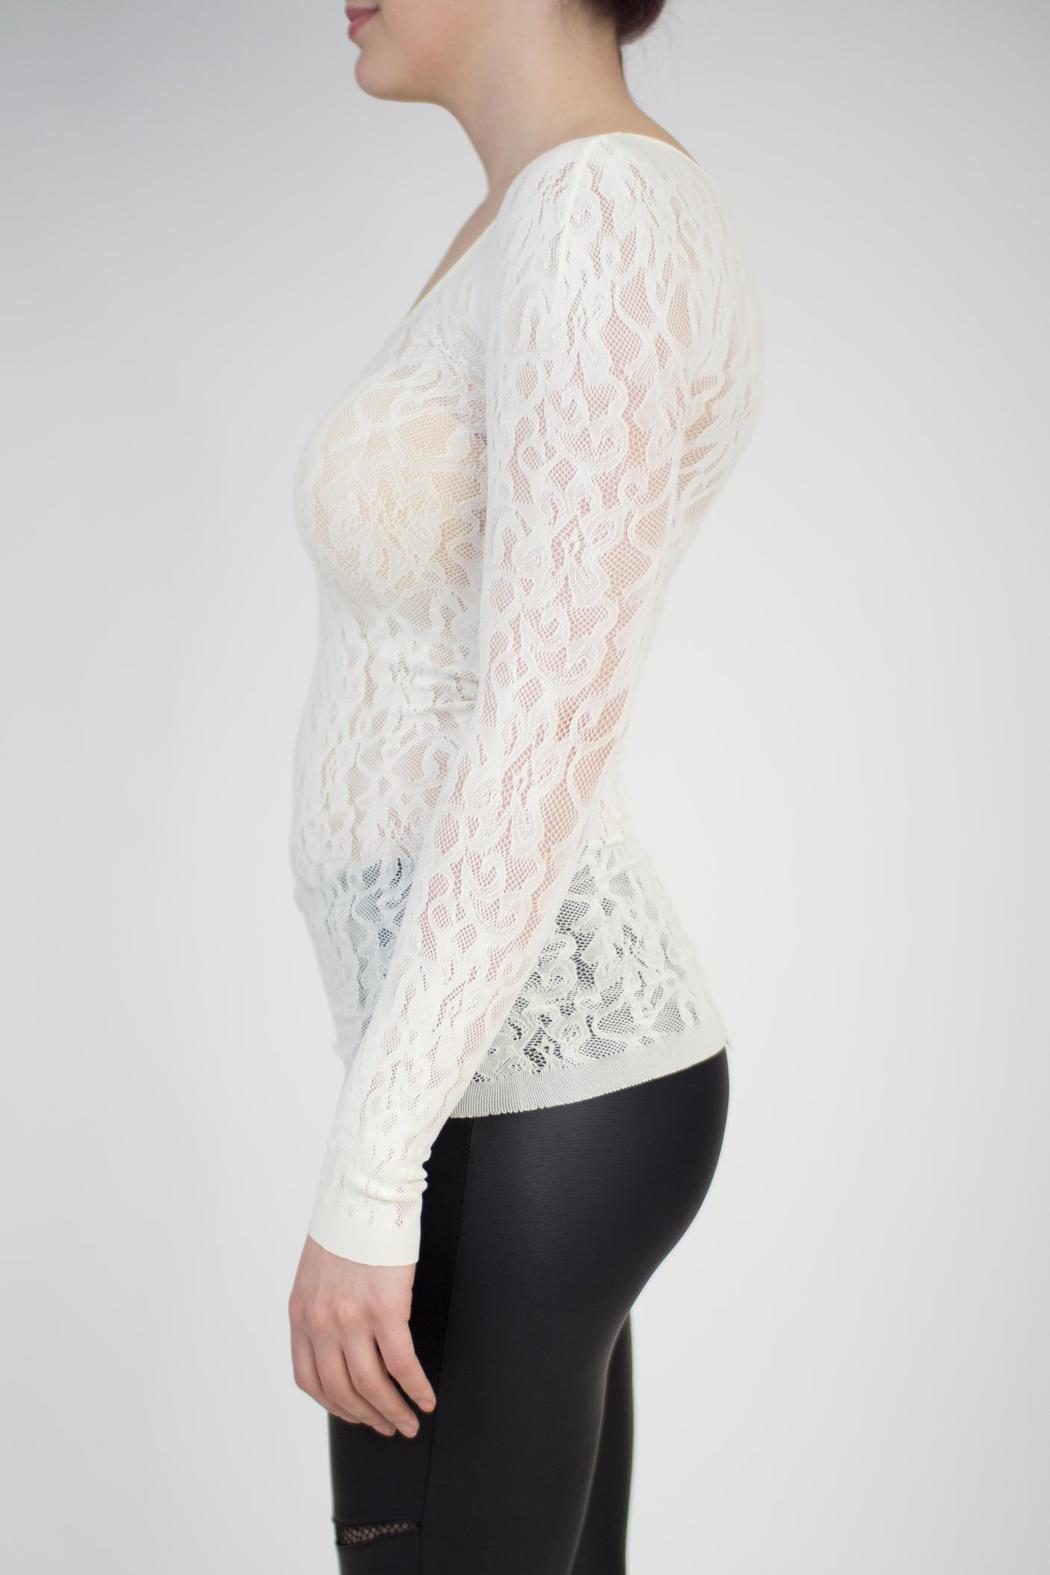 Seamless Lace Top